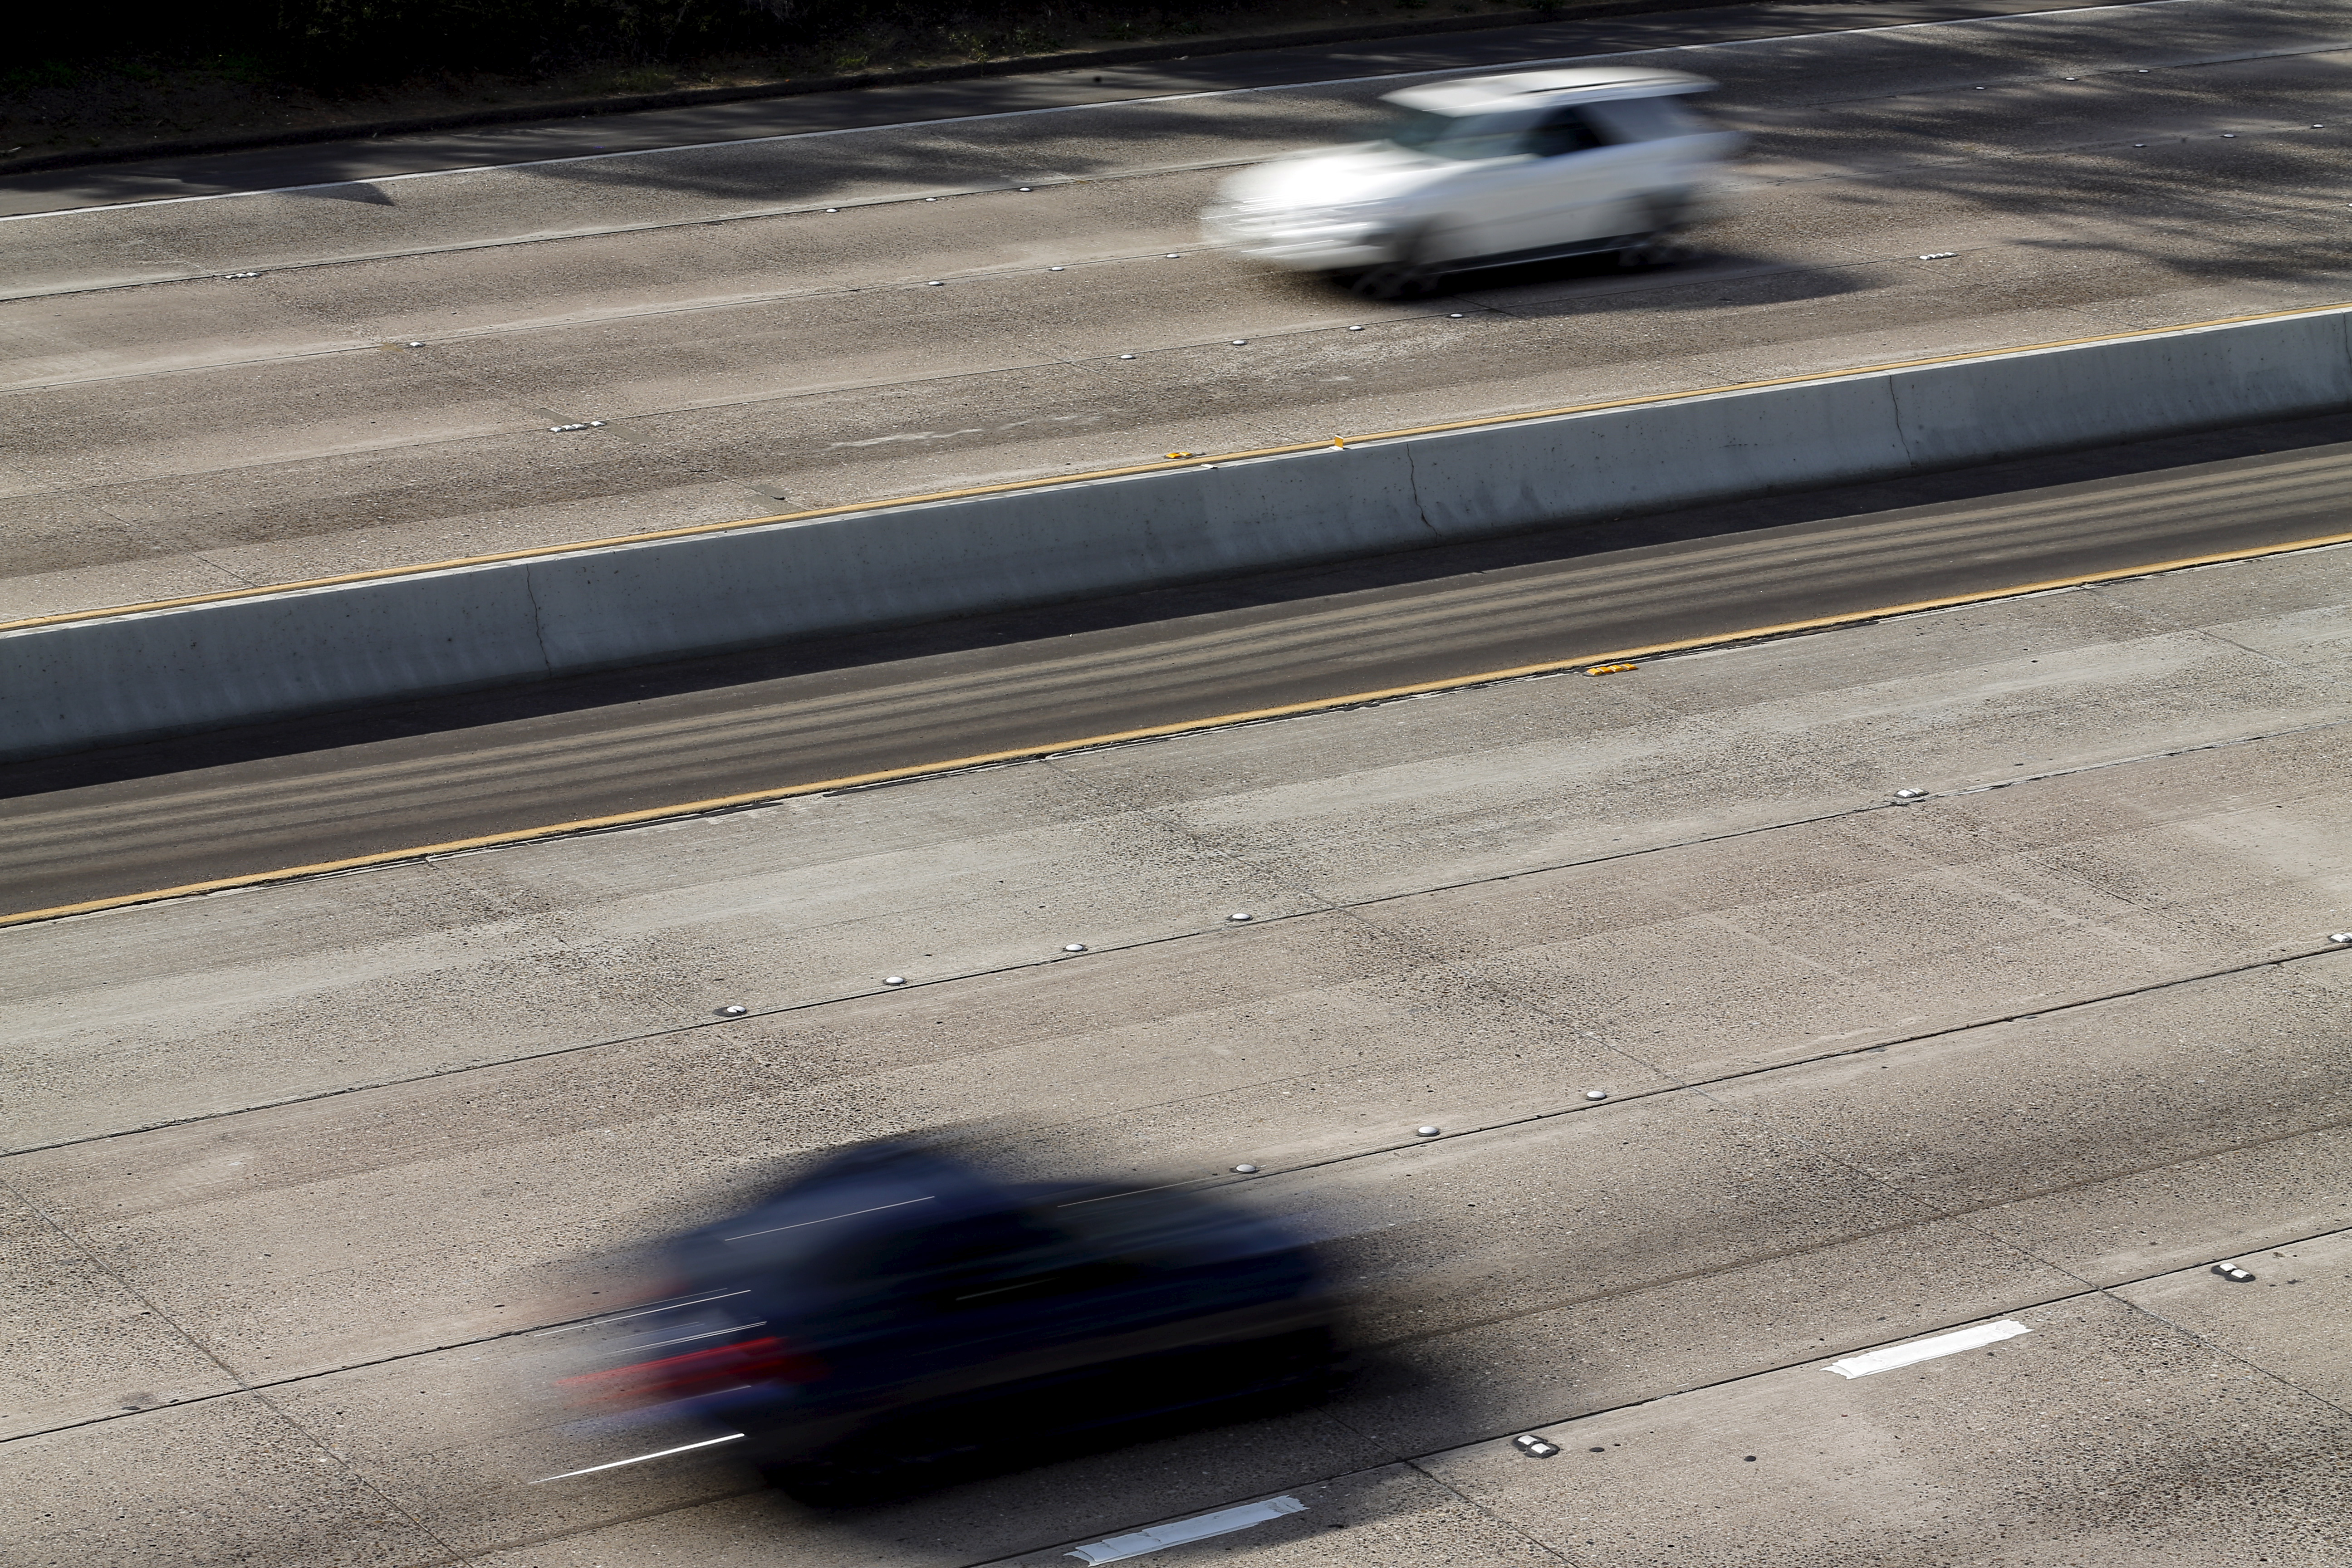 Cars travel on roads lacking painted freeway lane markers on Interstate highway 5 in San Diego, California February 10, 2016.